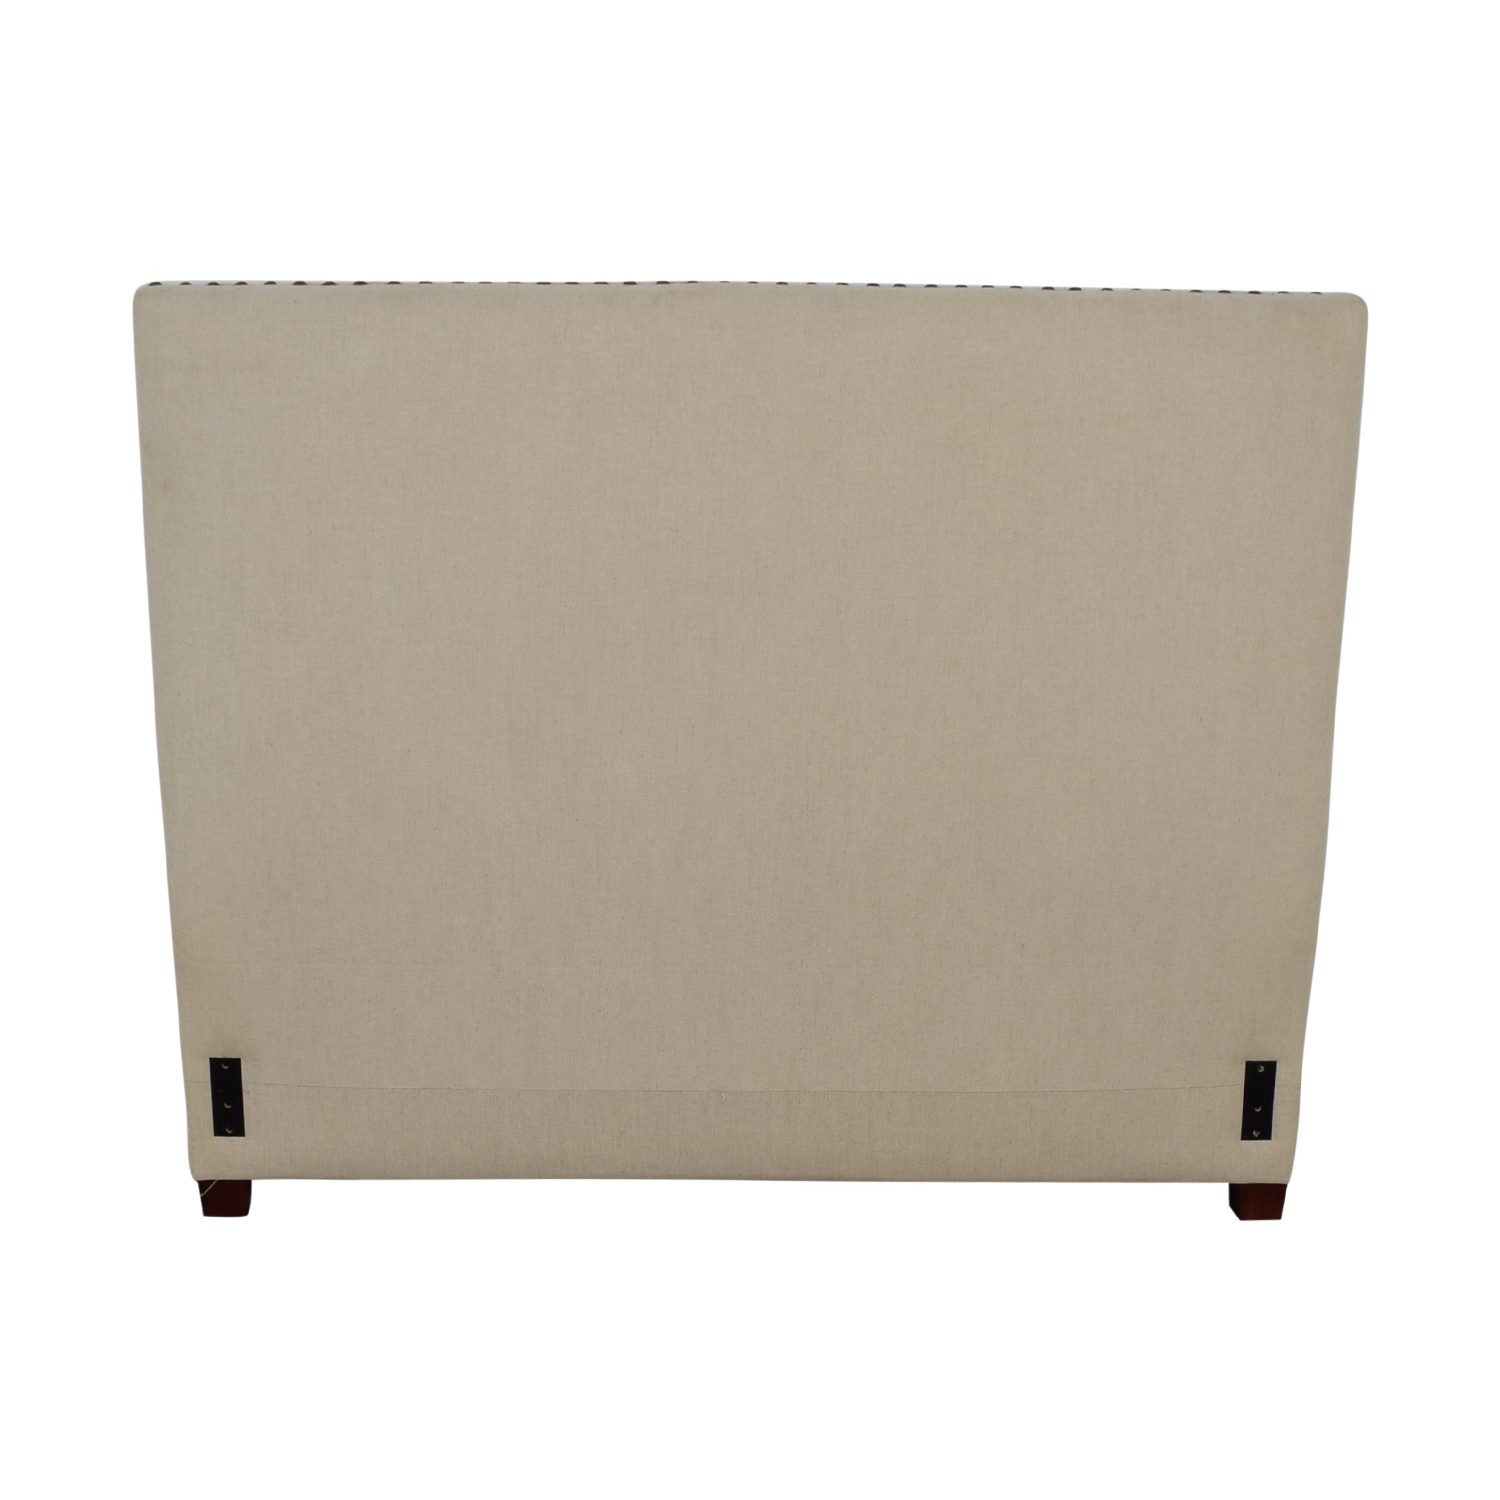 Pottery Barn Pottery Barn Square Beige Nailhead Upholstered Queen Headboard Beds